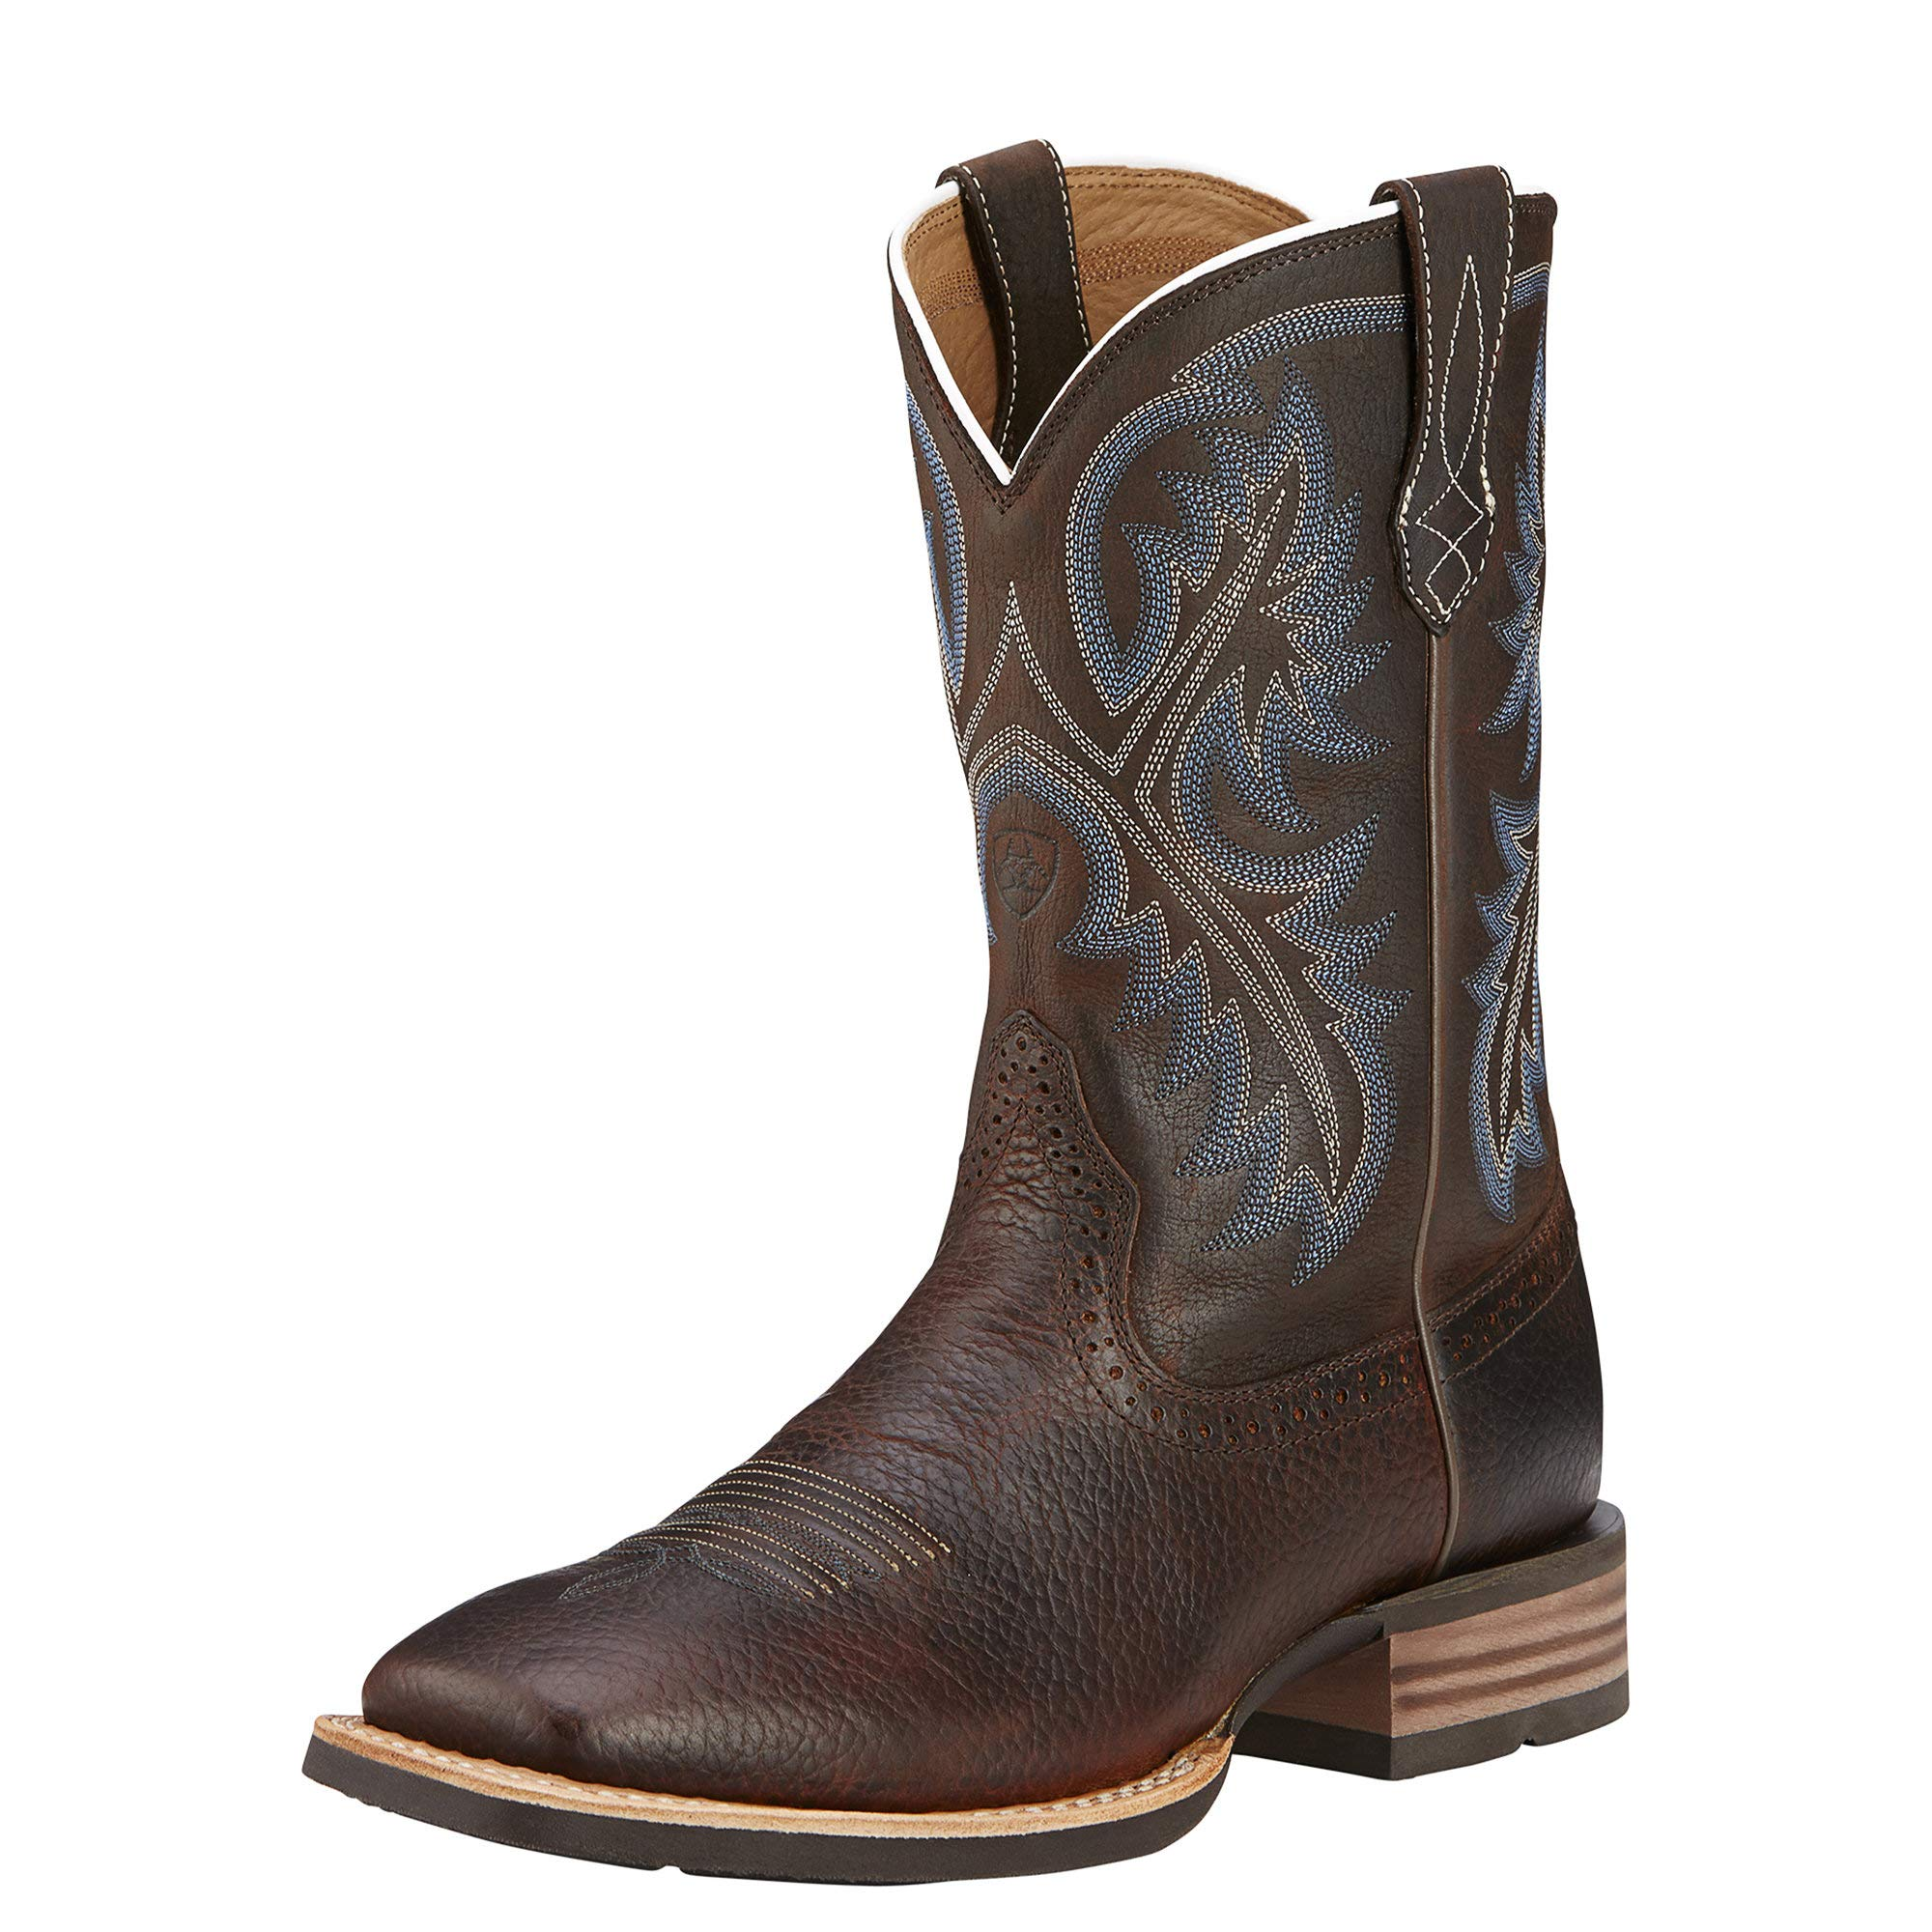 Ariat Men's Quickdraw Western Cowboy Boot, Brown Oiled Rowdy, 10 W US